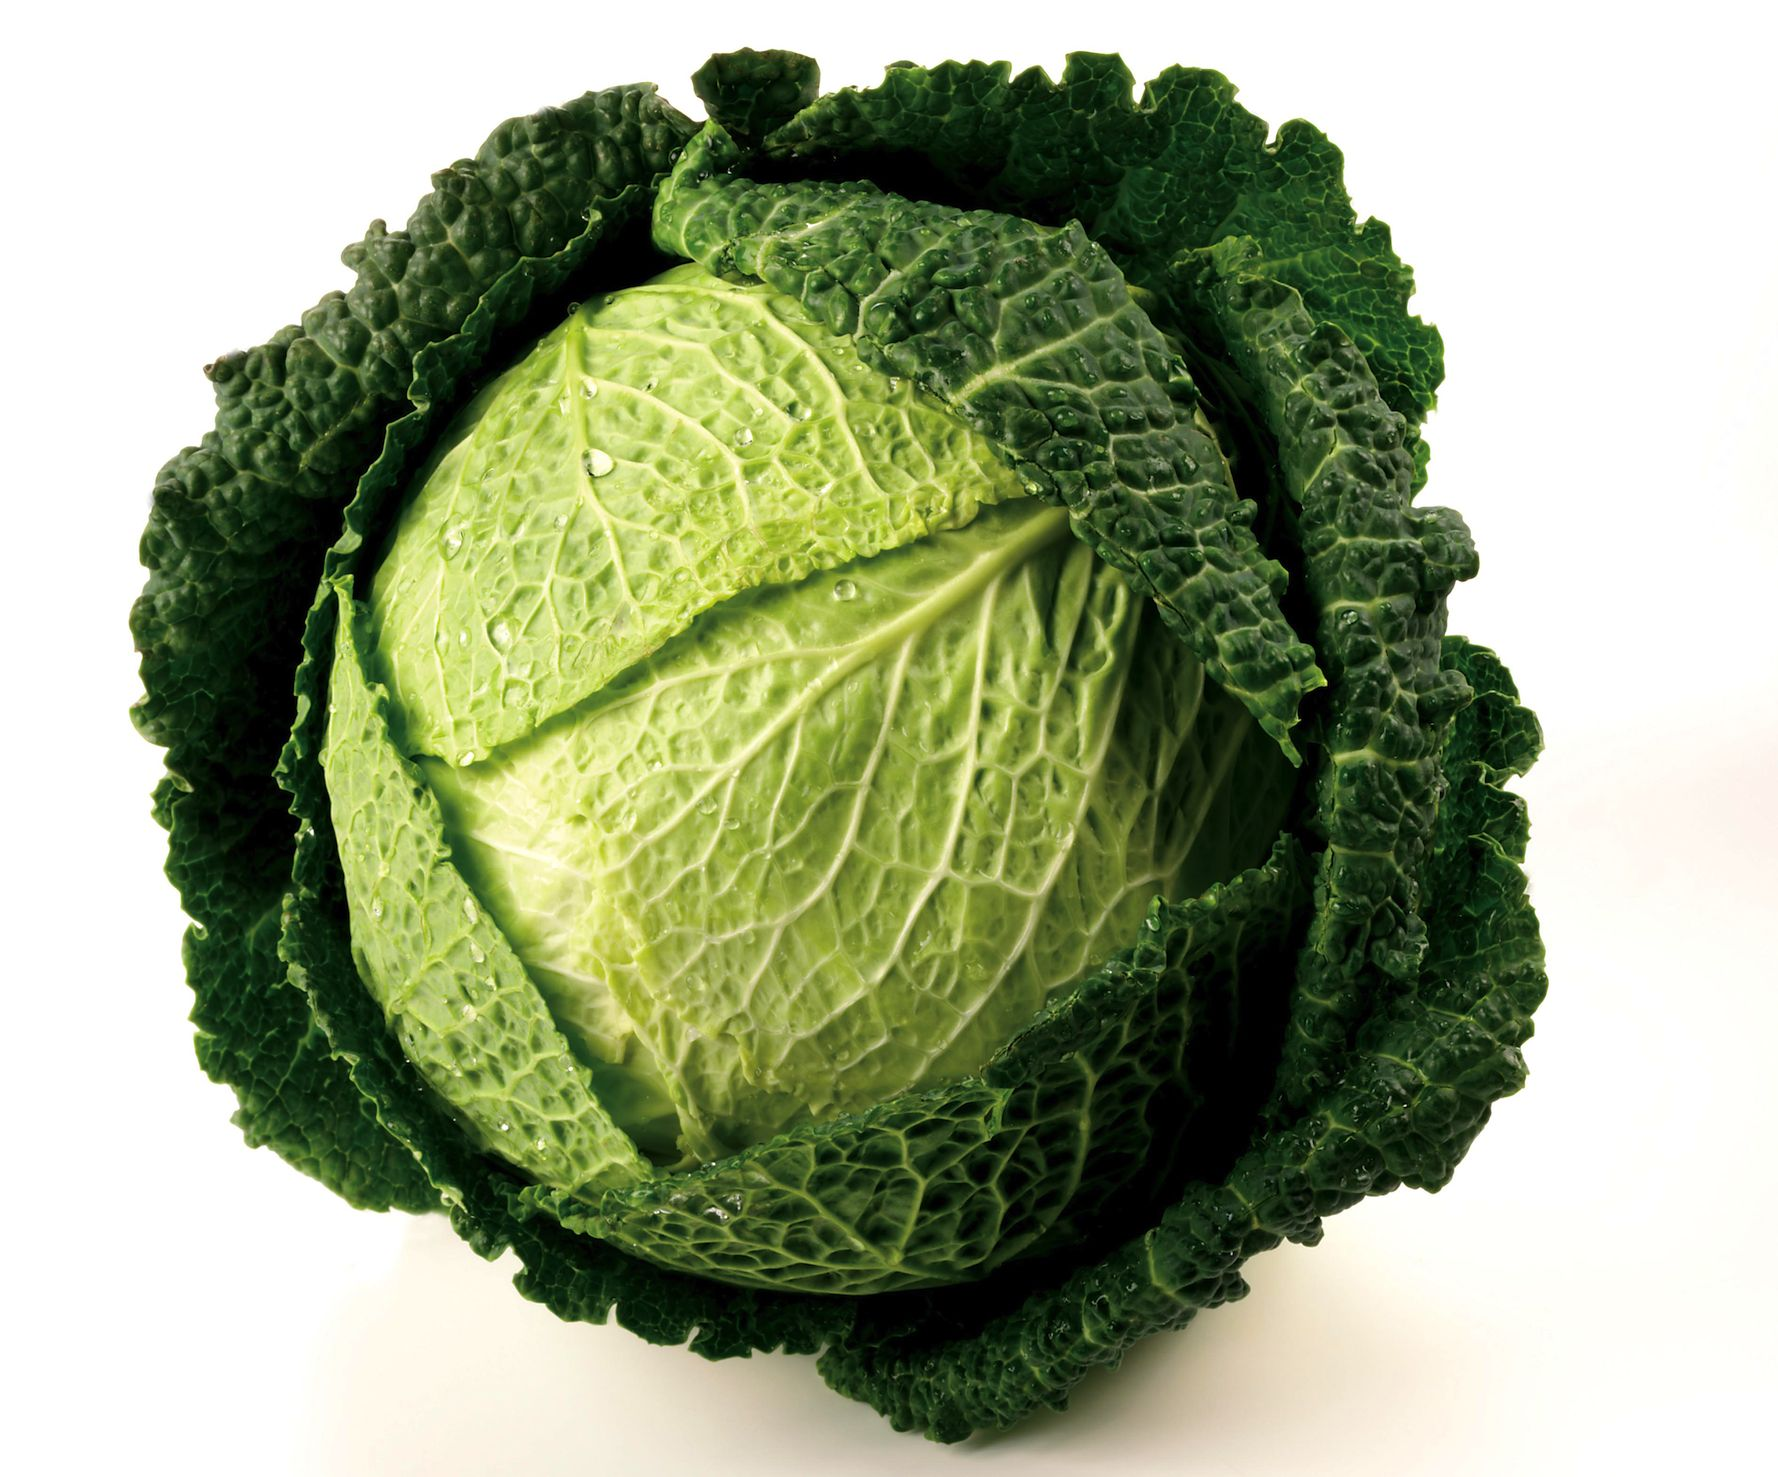 Unusual Cabbage Kind 243.66 Kb